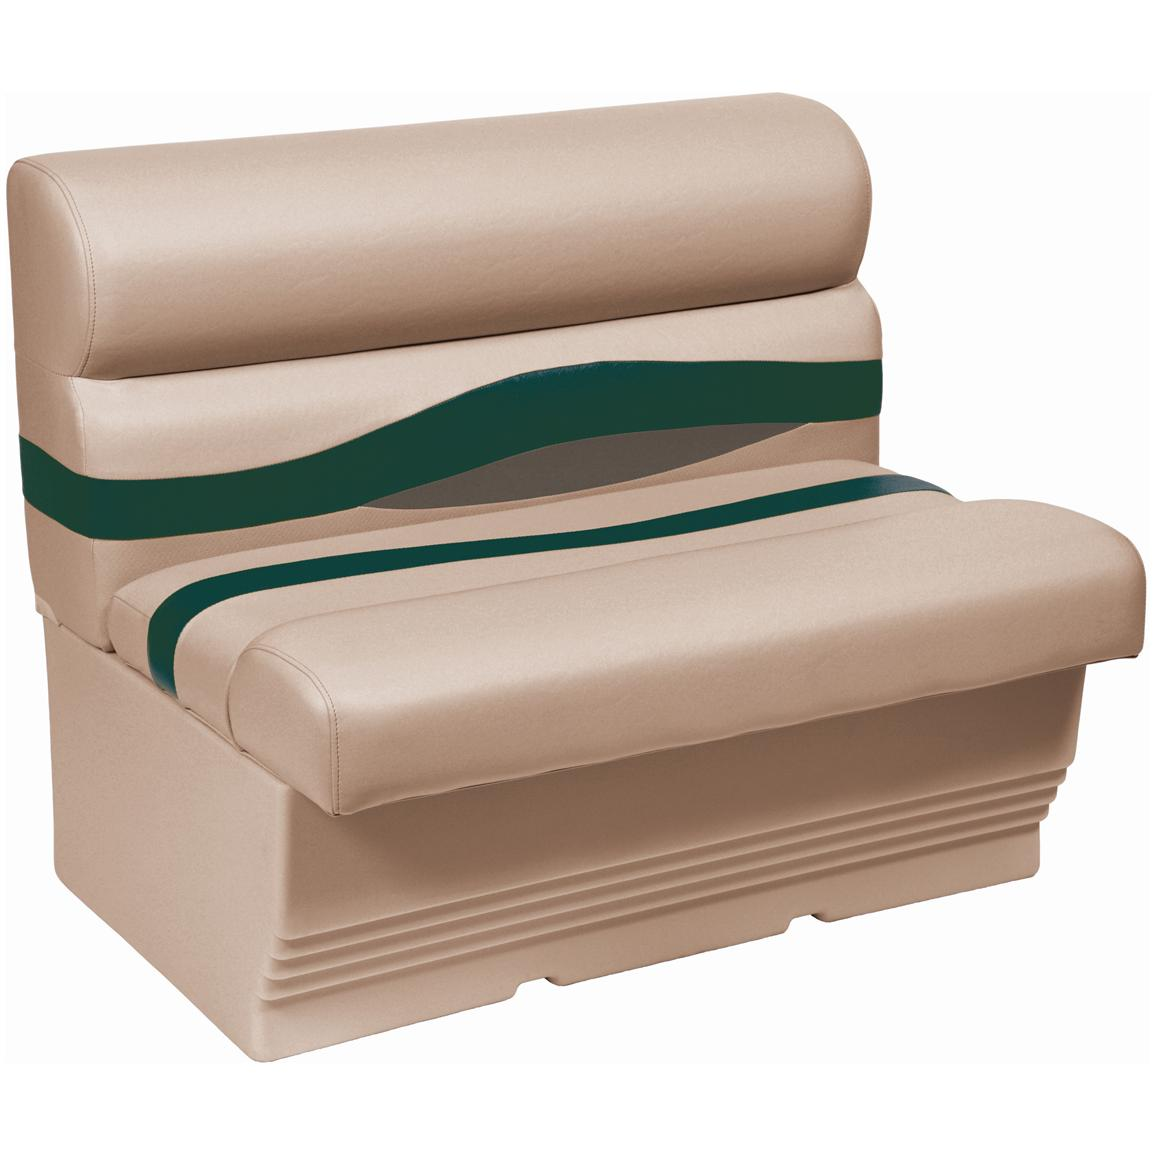 "Wise® Premier 45"" Pontoon Bench Seat, Color F - Mocha Java Punch / Evergreen / Rock Salt"